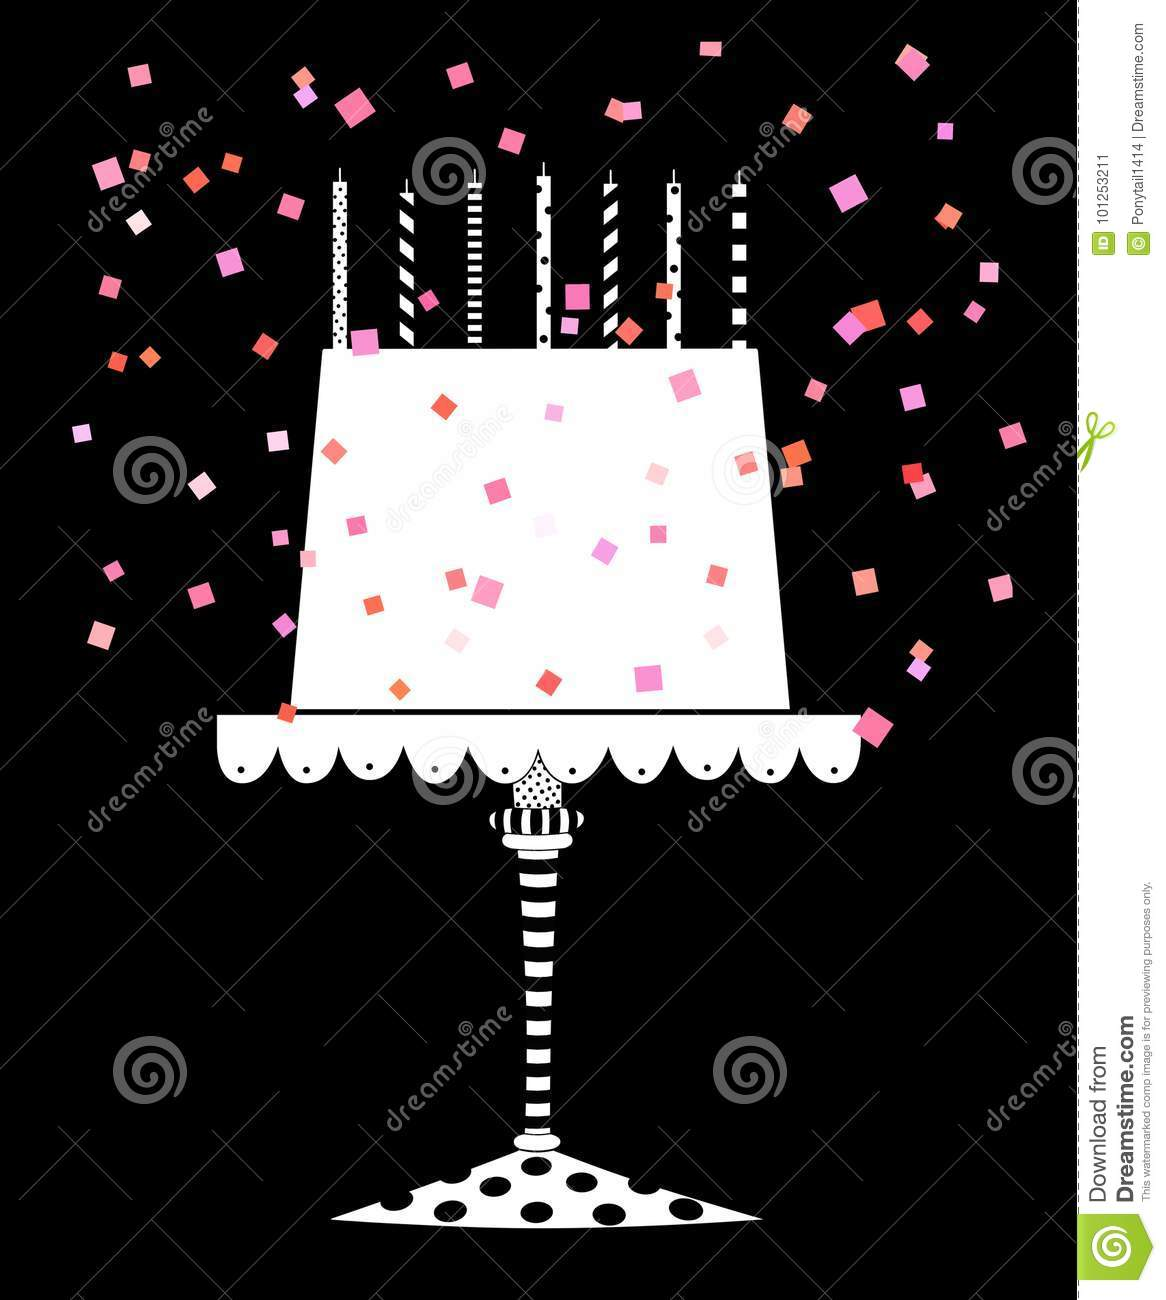 Stupendous Cute Festive Birthday Cake With Confetti Stock Illustration Funny Birthday Cards Online Alyptdamsfinfo